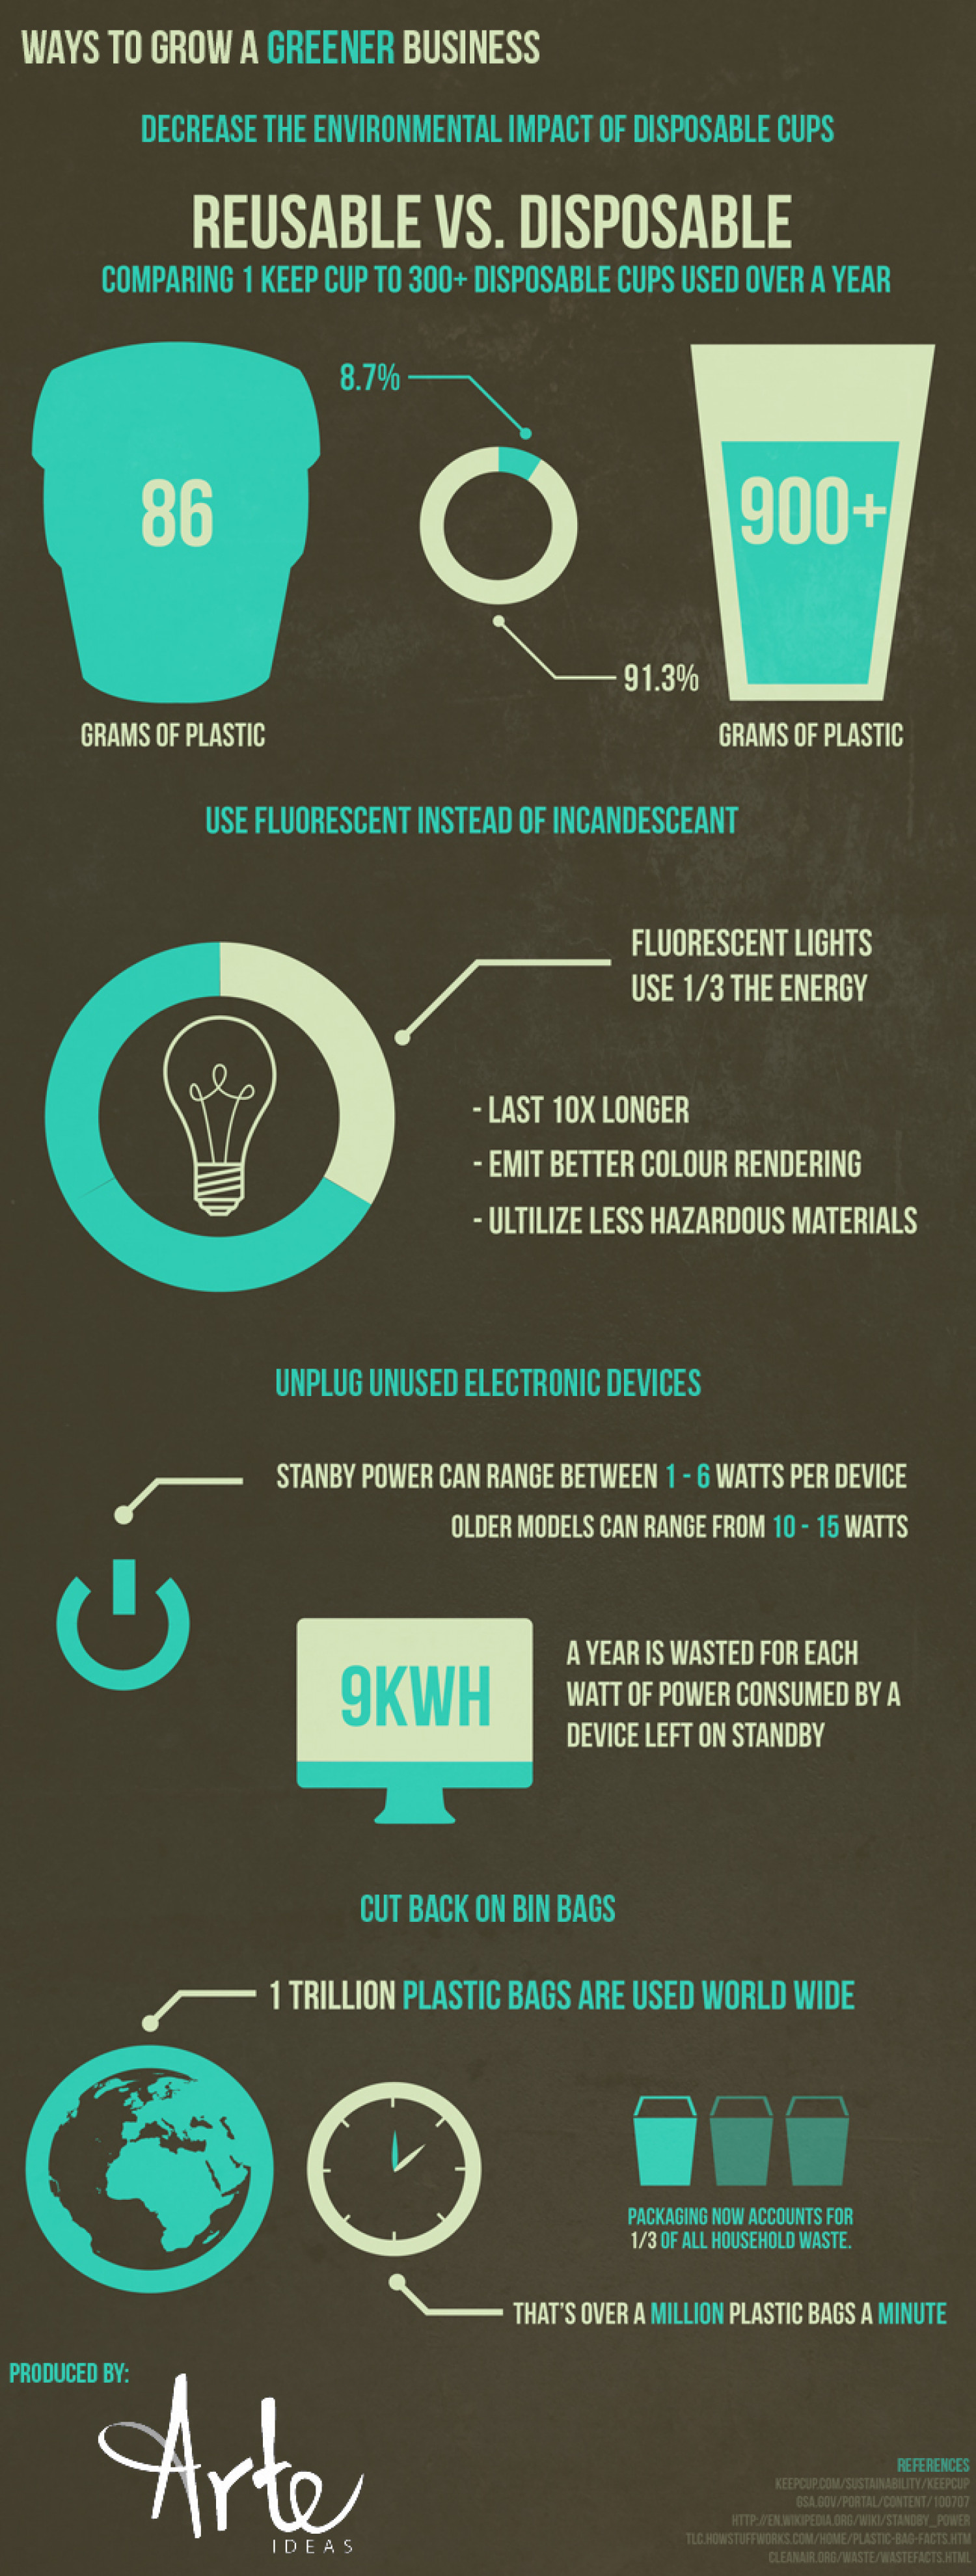 How to Grow a Greener Business Infographic